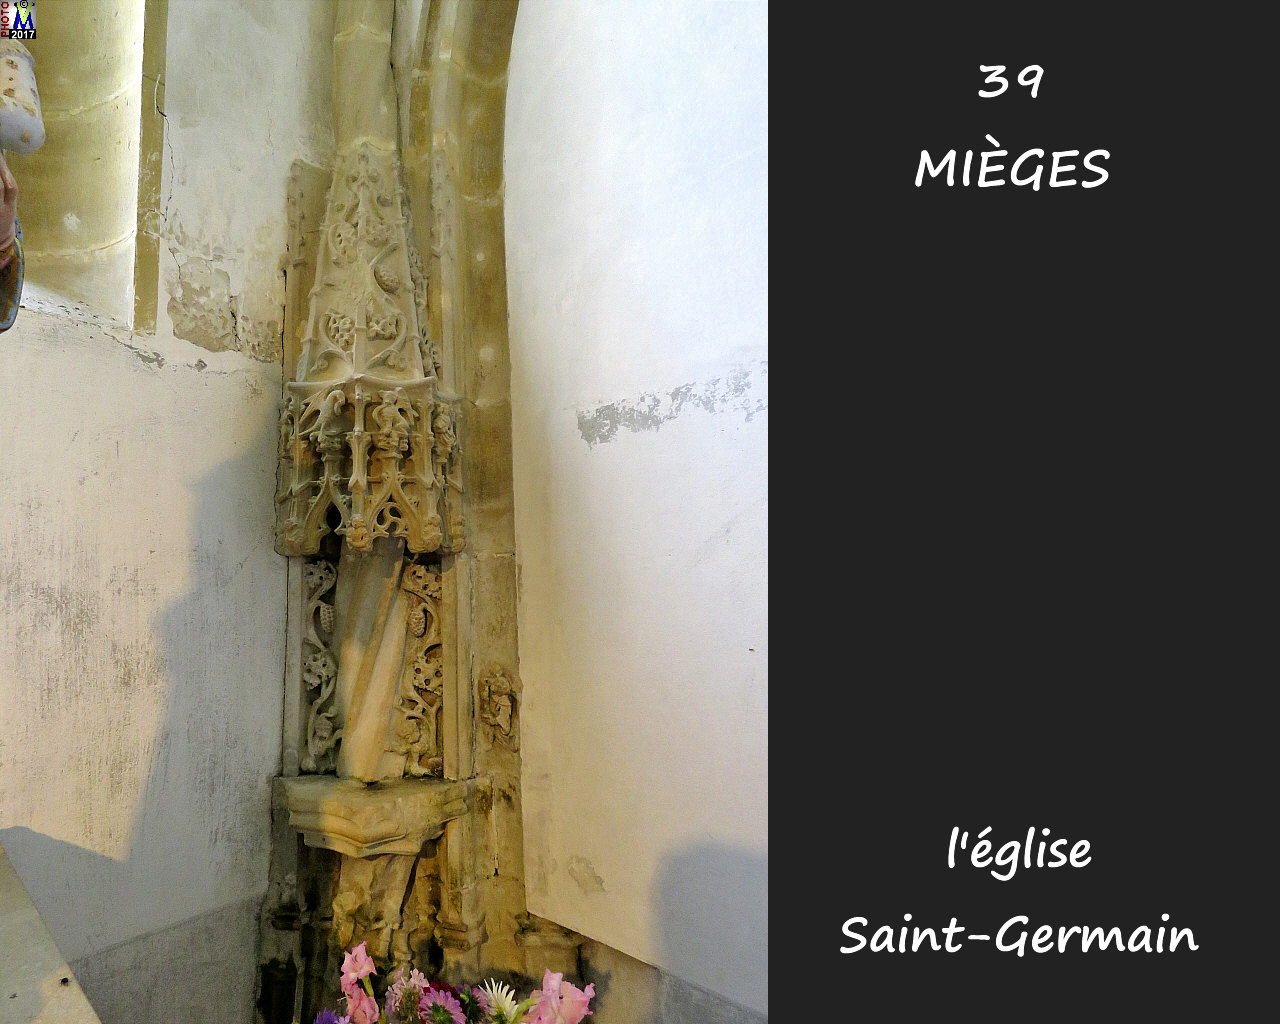 39MIEGES_eglise_280.jpg